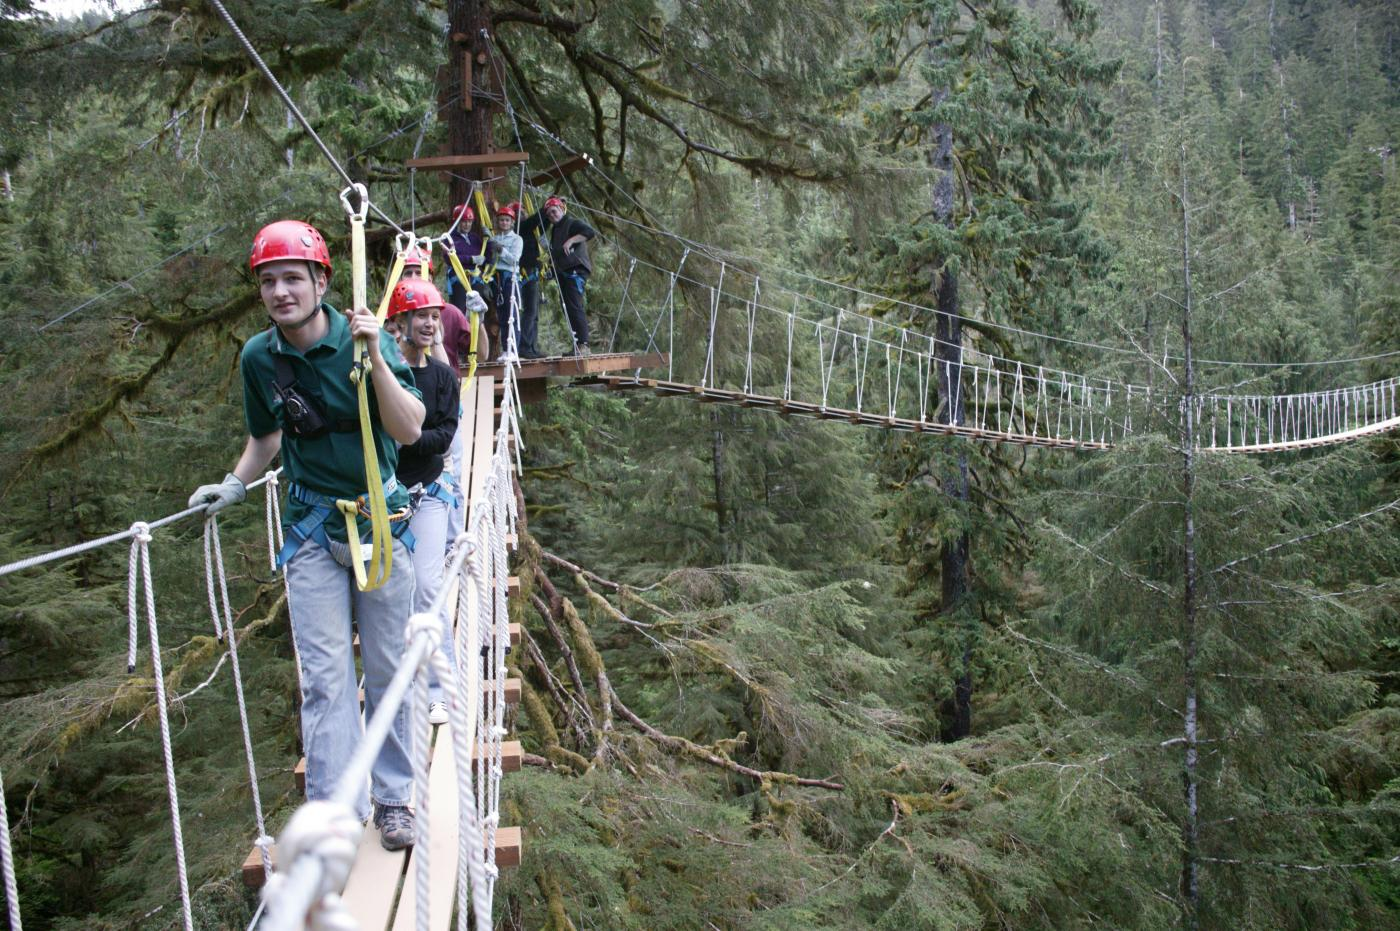 Canopy Adventure & Wildlife Expedition in Ketchikan, AK